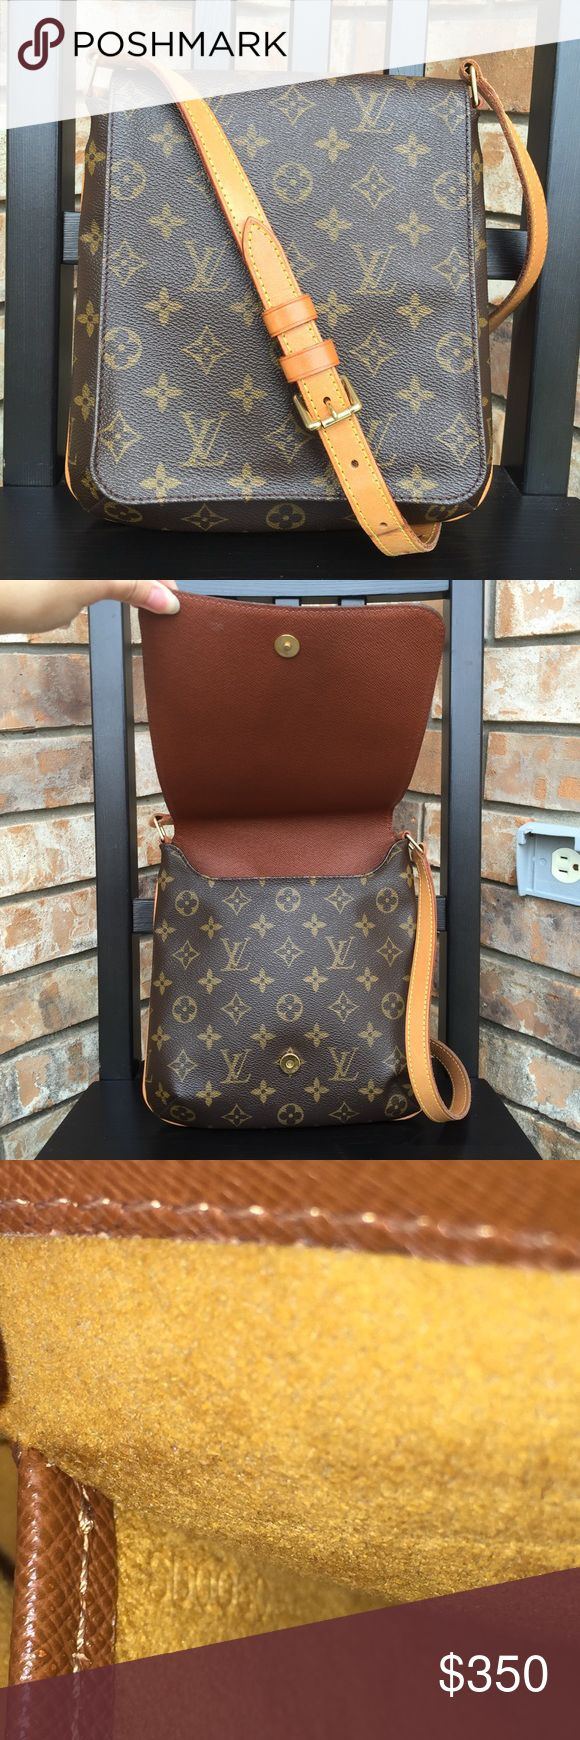 Louis Vuitton Musette Salsa Authentic. Date code SD0060. Used. Canvas in great condition, no faded spot/rip/tear. There is normal wear on strap (just the mark, not tear/rip). Its a shoulder bag for aldult, but can be used as crossbody for kid. Why pay so much for tiny Mini Speedy when you can buy this one for your kids? It has more space that they can actually use it (some small books, nintendo 3DS, couple hotwheels or shopkins). The last pic shows how to use it as crossbody for kid (not my…